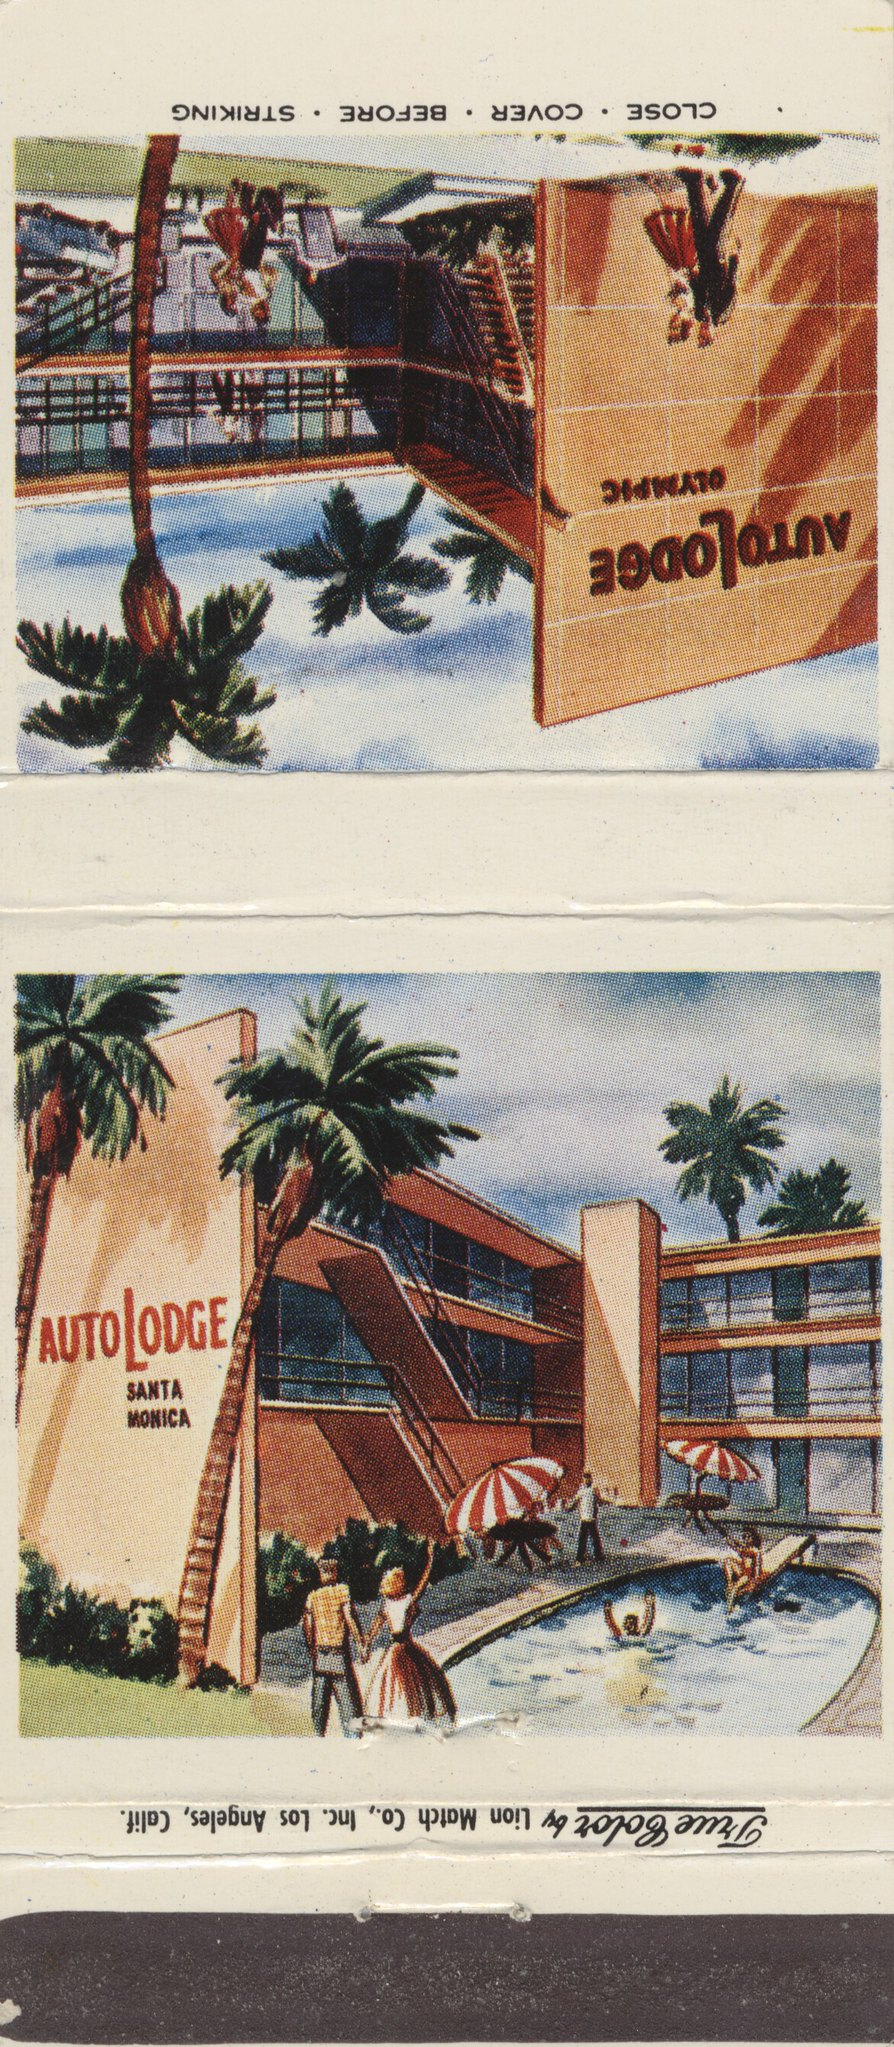 AutoLodge - Santa Monica, California